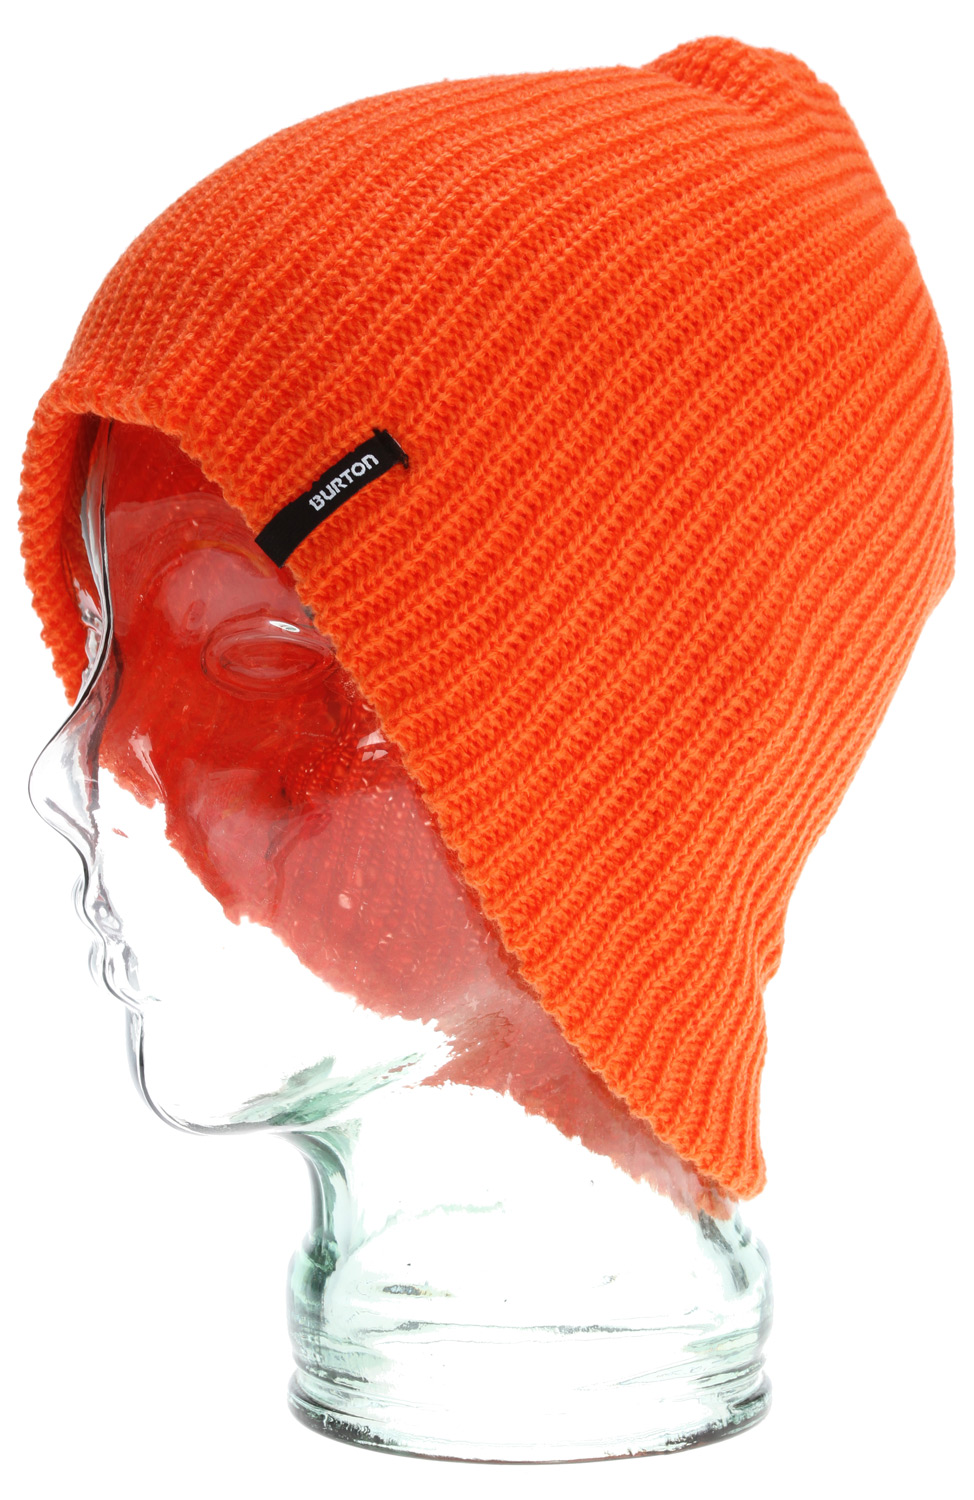 Snowboard Key Features of the Burton All Day Long 3 Pack Beanies: 100% Fine Knit Acrylic Slouch Fit - $40.00